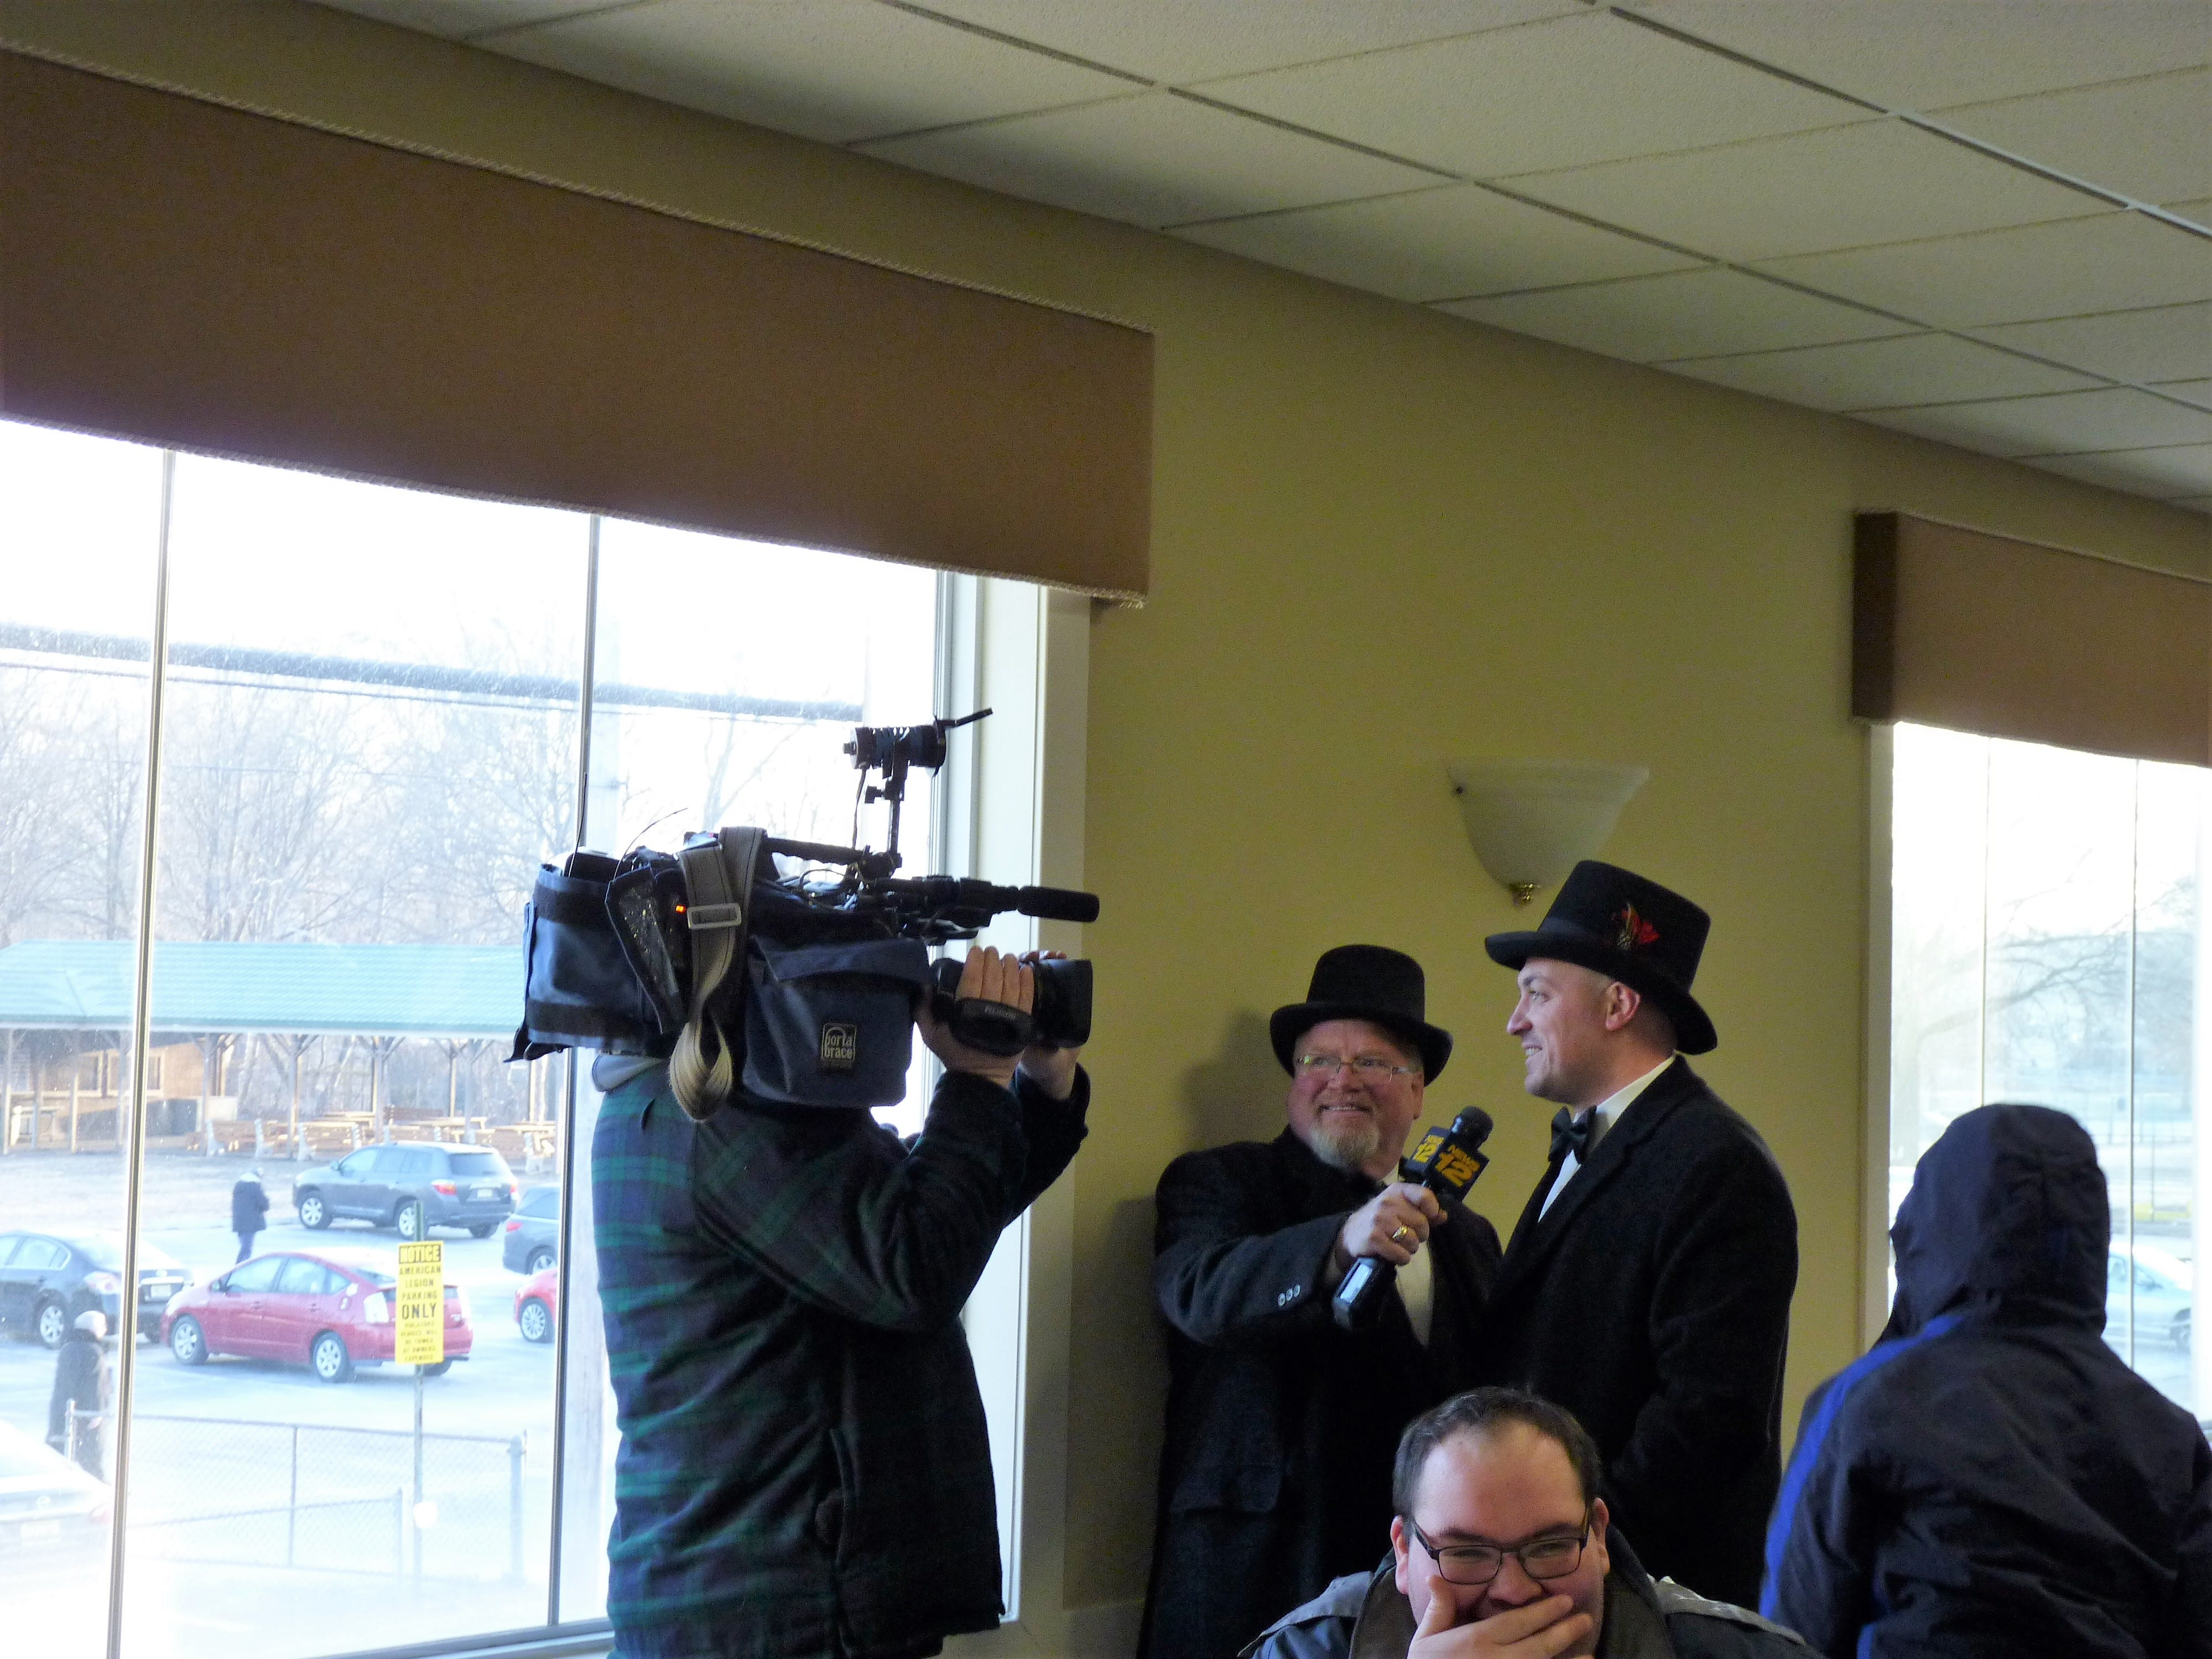 Groundhog wranglers speaking to the press after the Groundhog Day prediction.